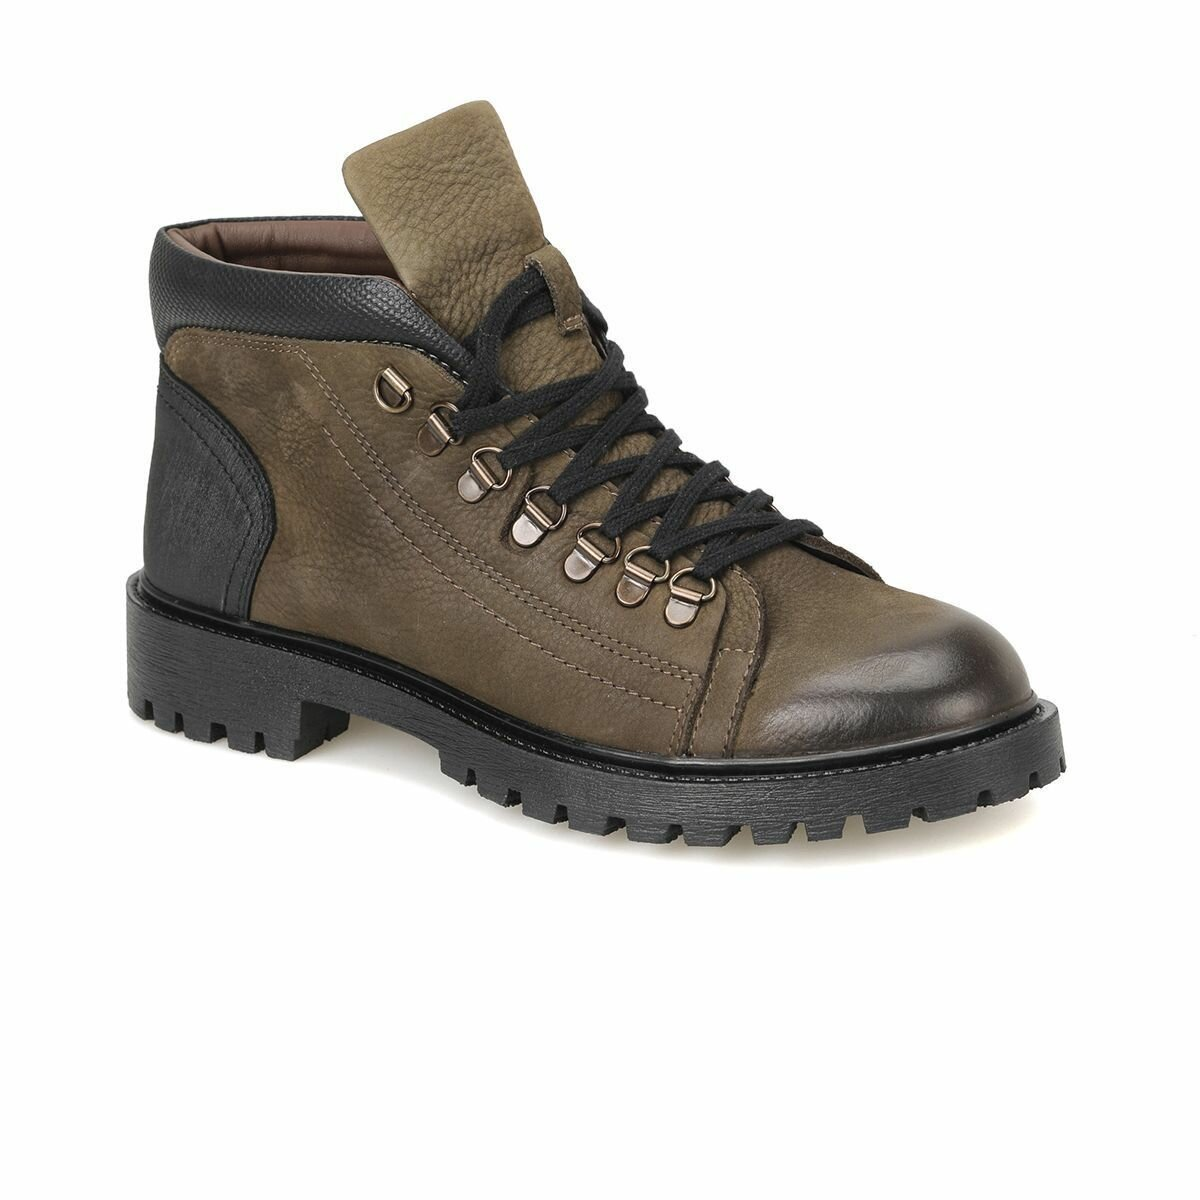 FLO 146-A Khaki Male Boots Forester